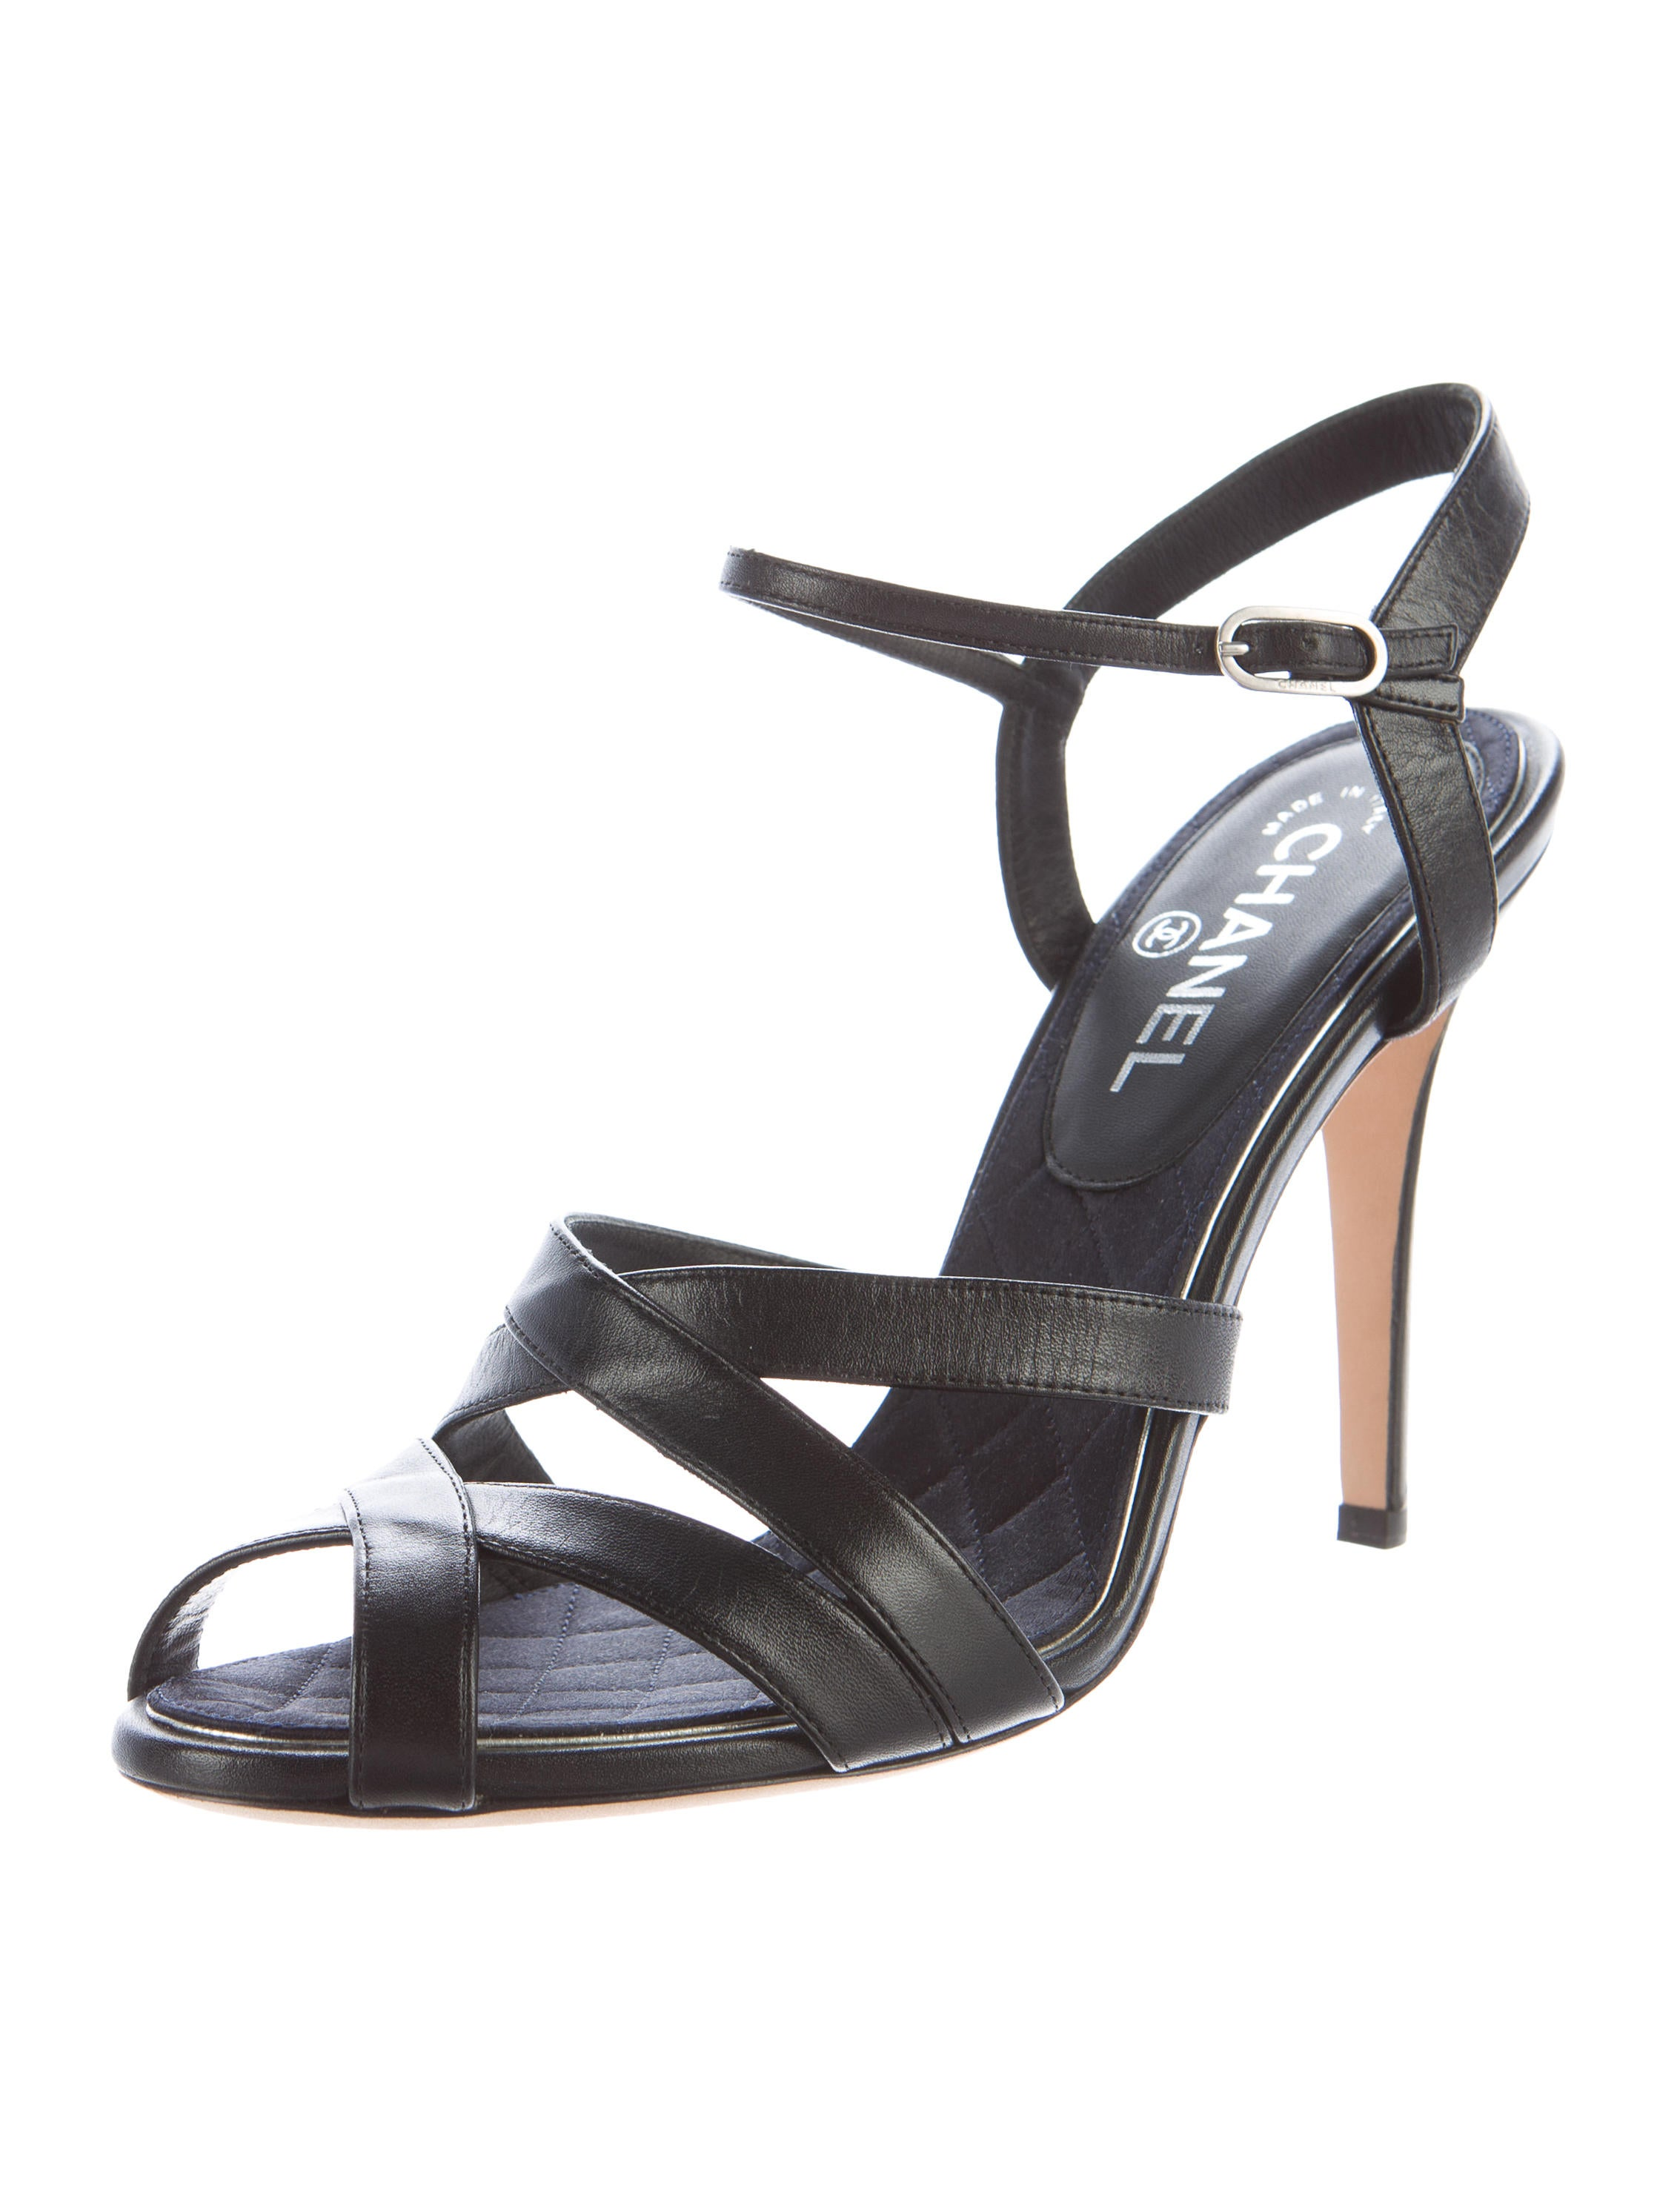 Chanel CC Leather Sandals - Shoes - CHA183571 | The RealReal